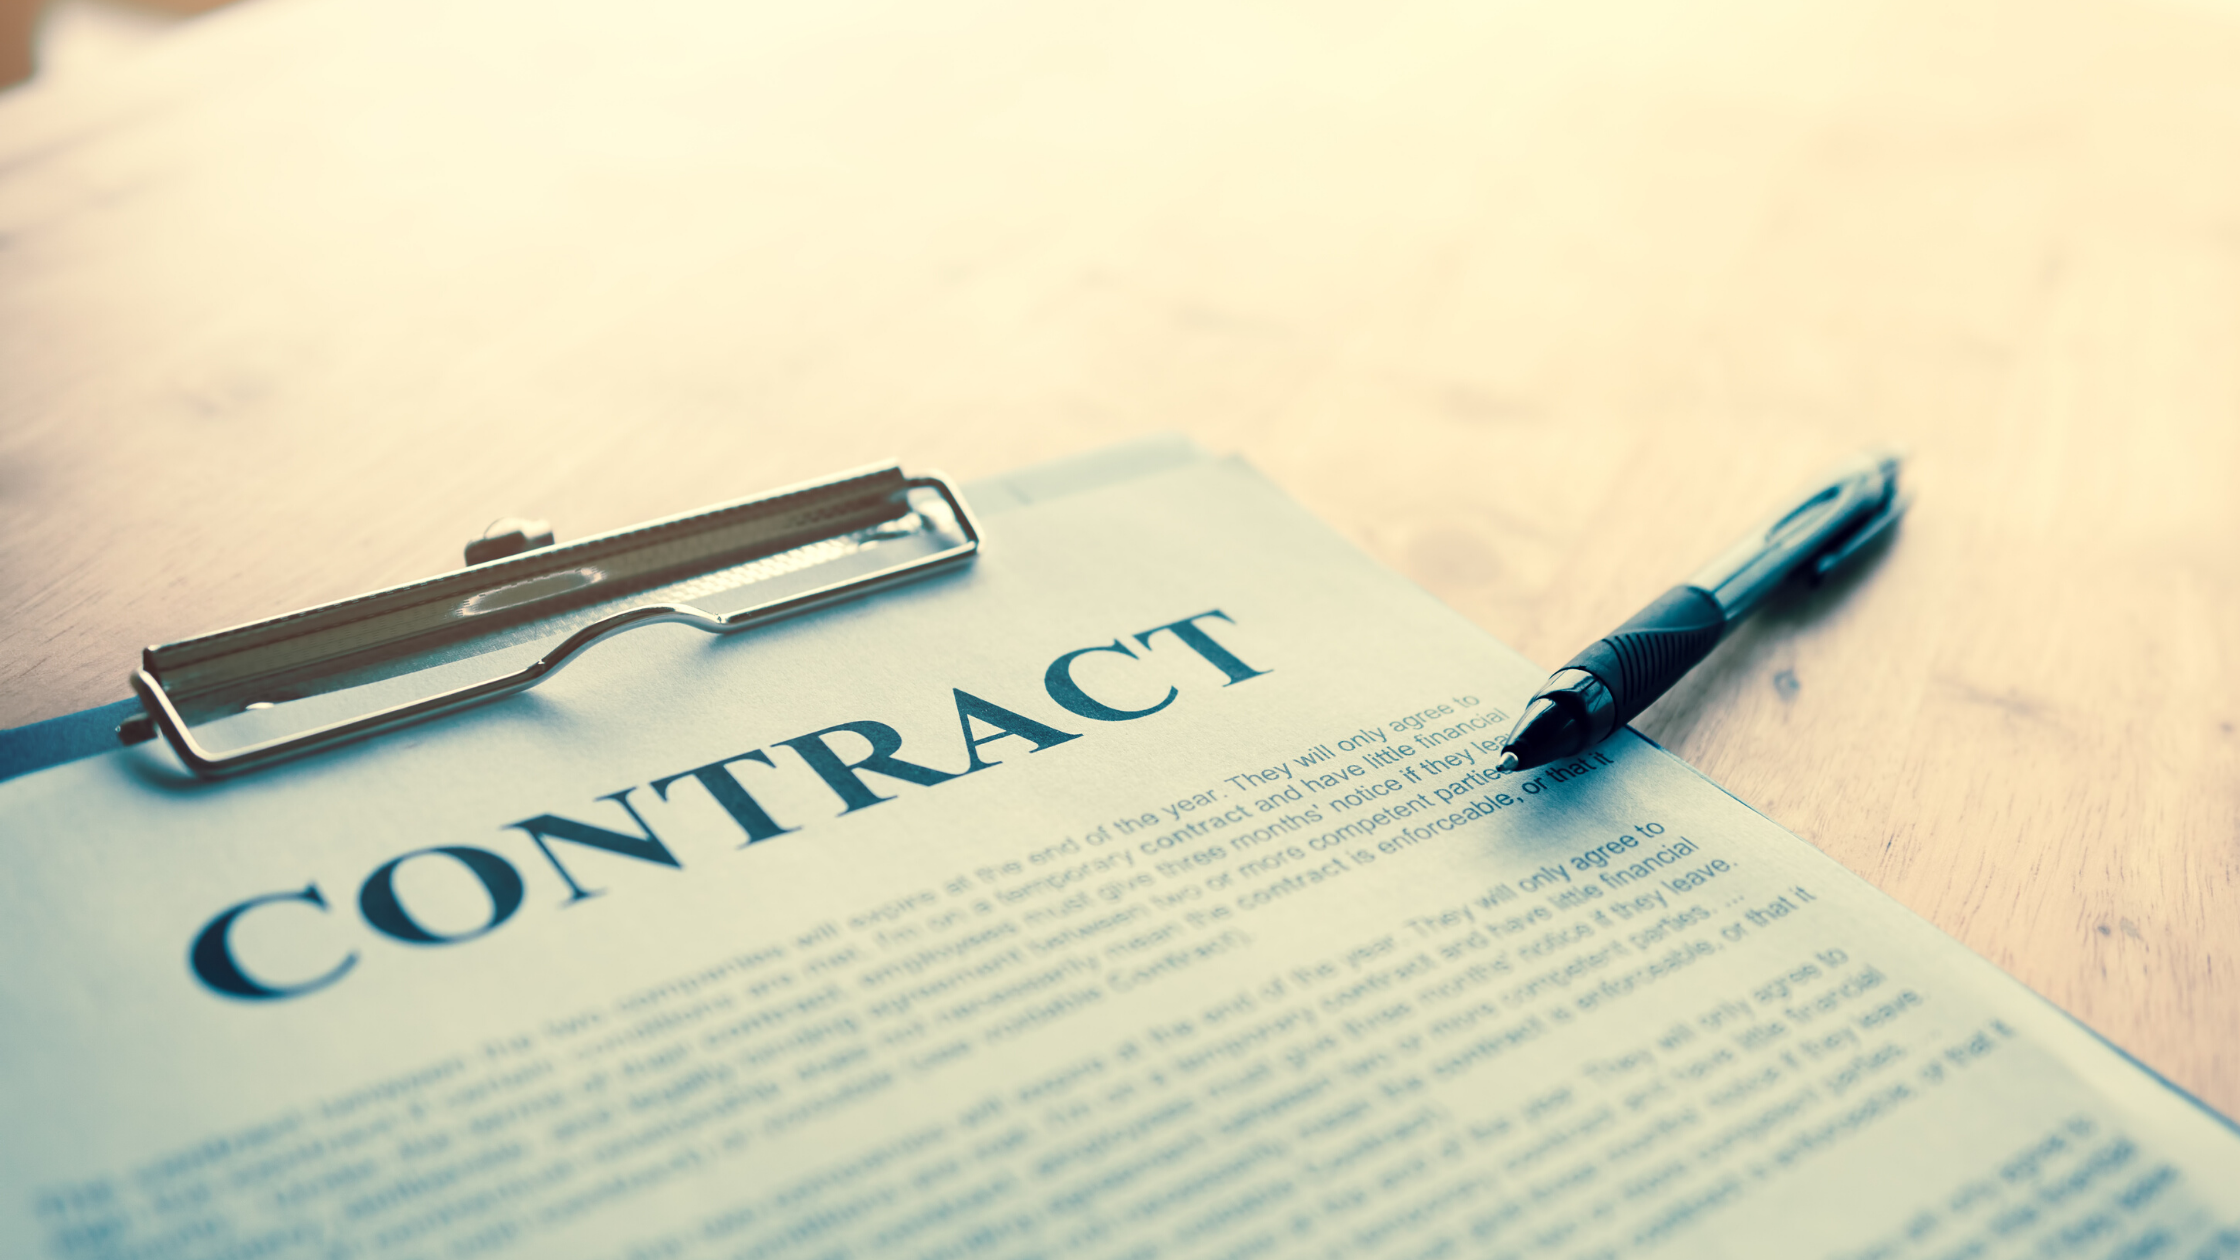 When Can a Contract Be Considered Null and Void? Look for These 3 Contributing Factors